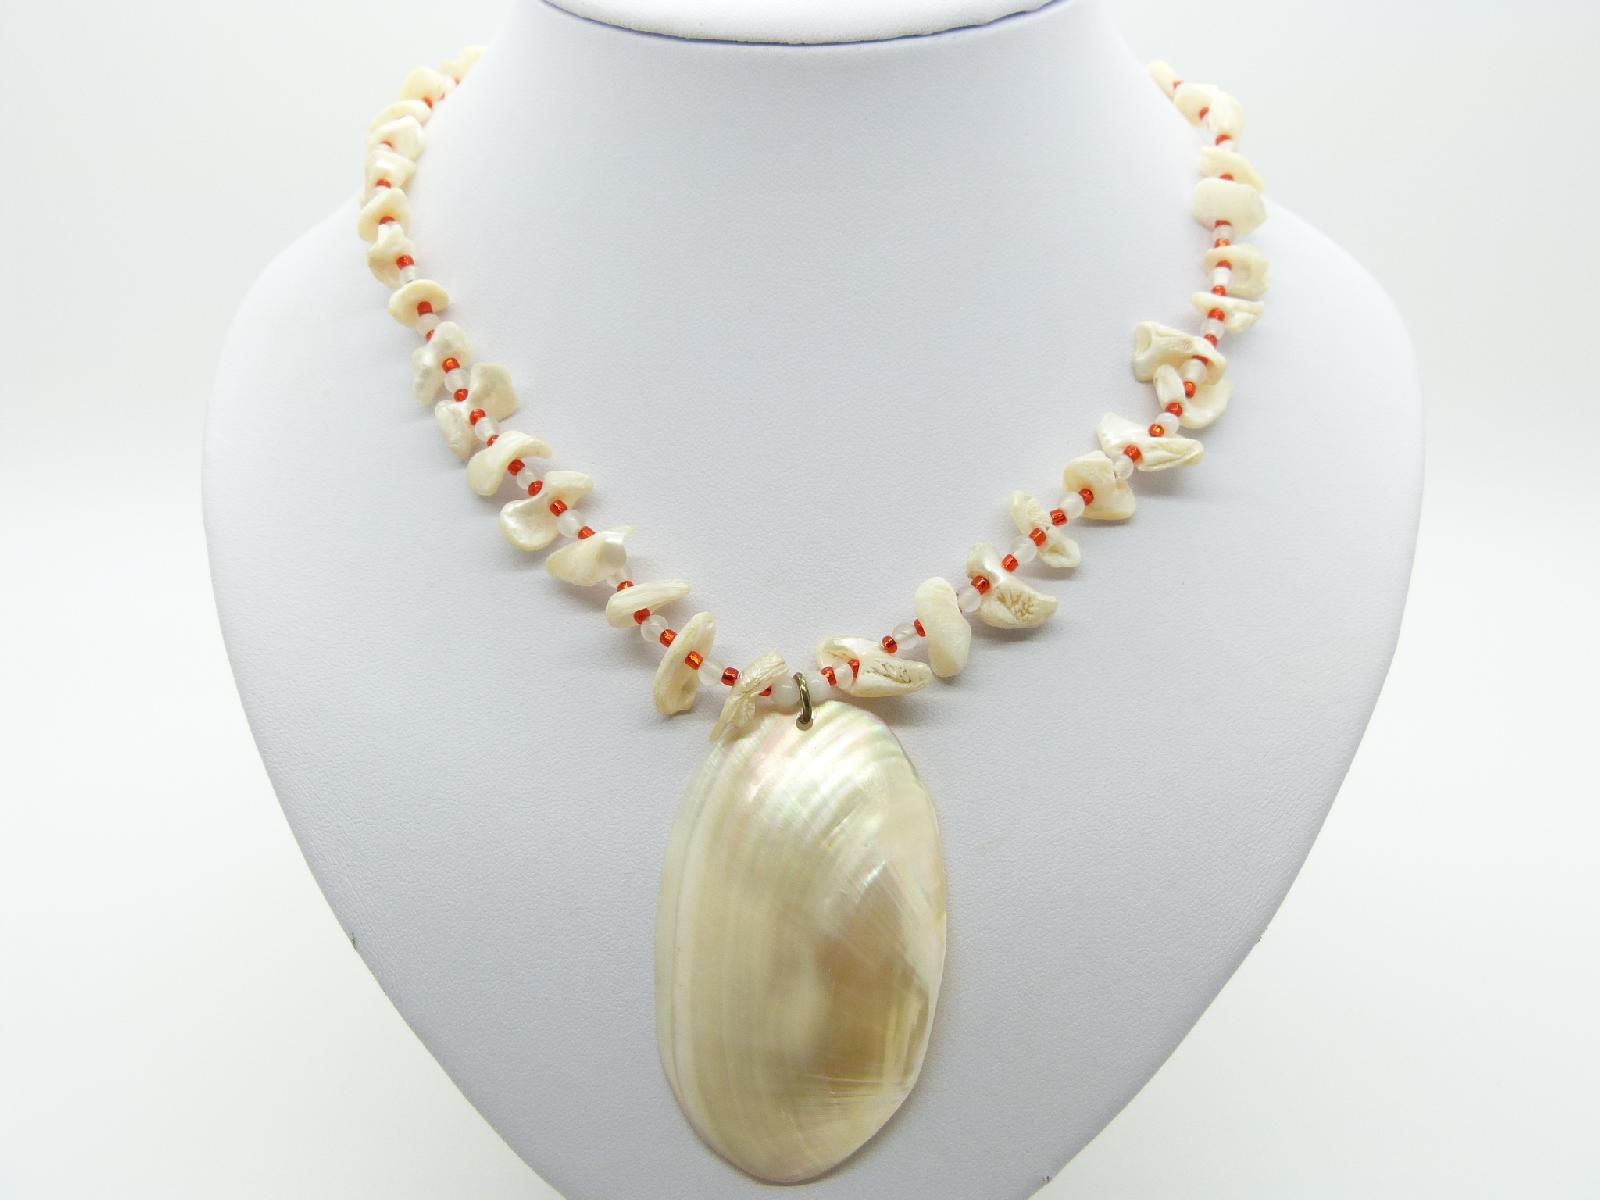 £14.00 - Very Pretty Mother of Pearl Chip Bead Necklace with Large MOP Pendant